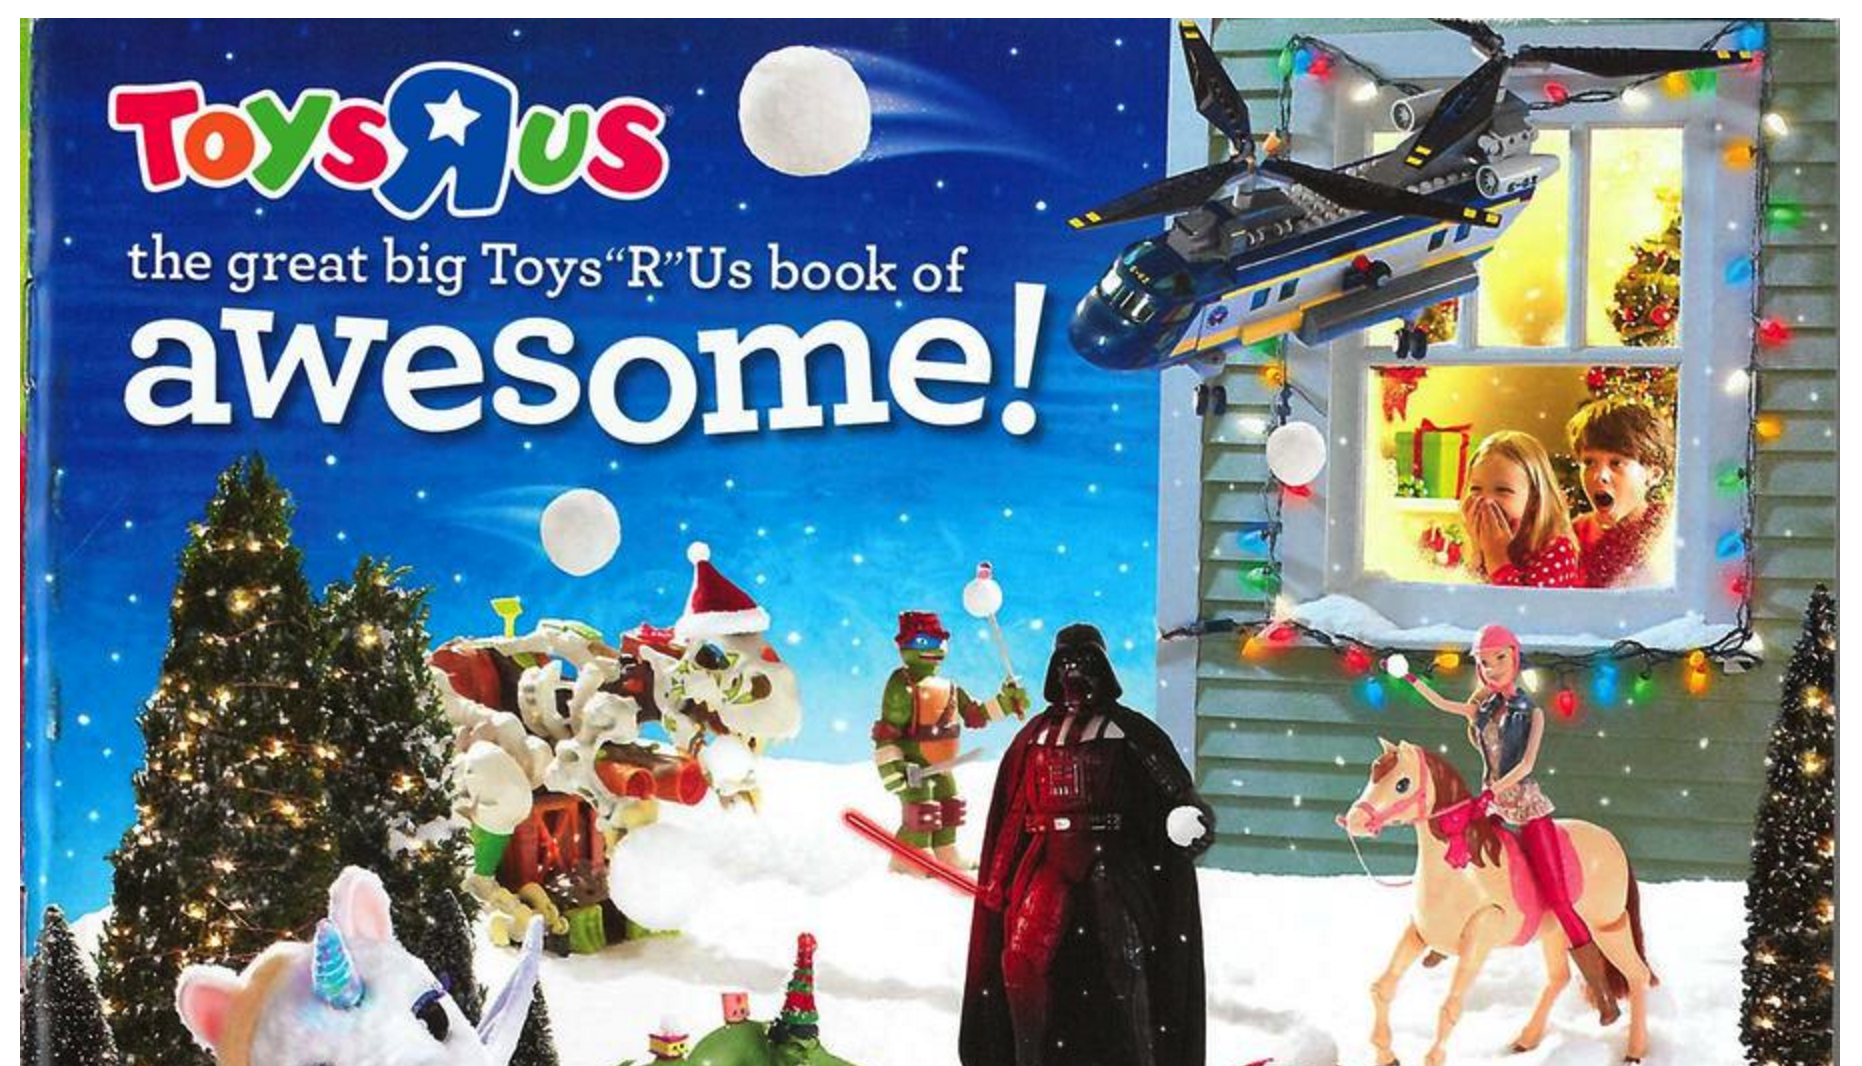 Toys R Us Toys : Toys r us toy book of awesome